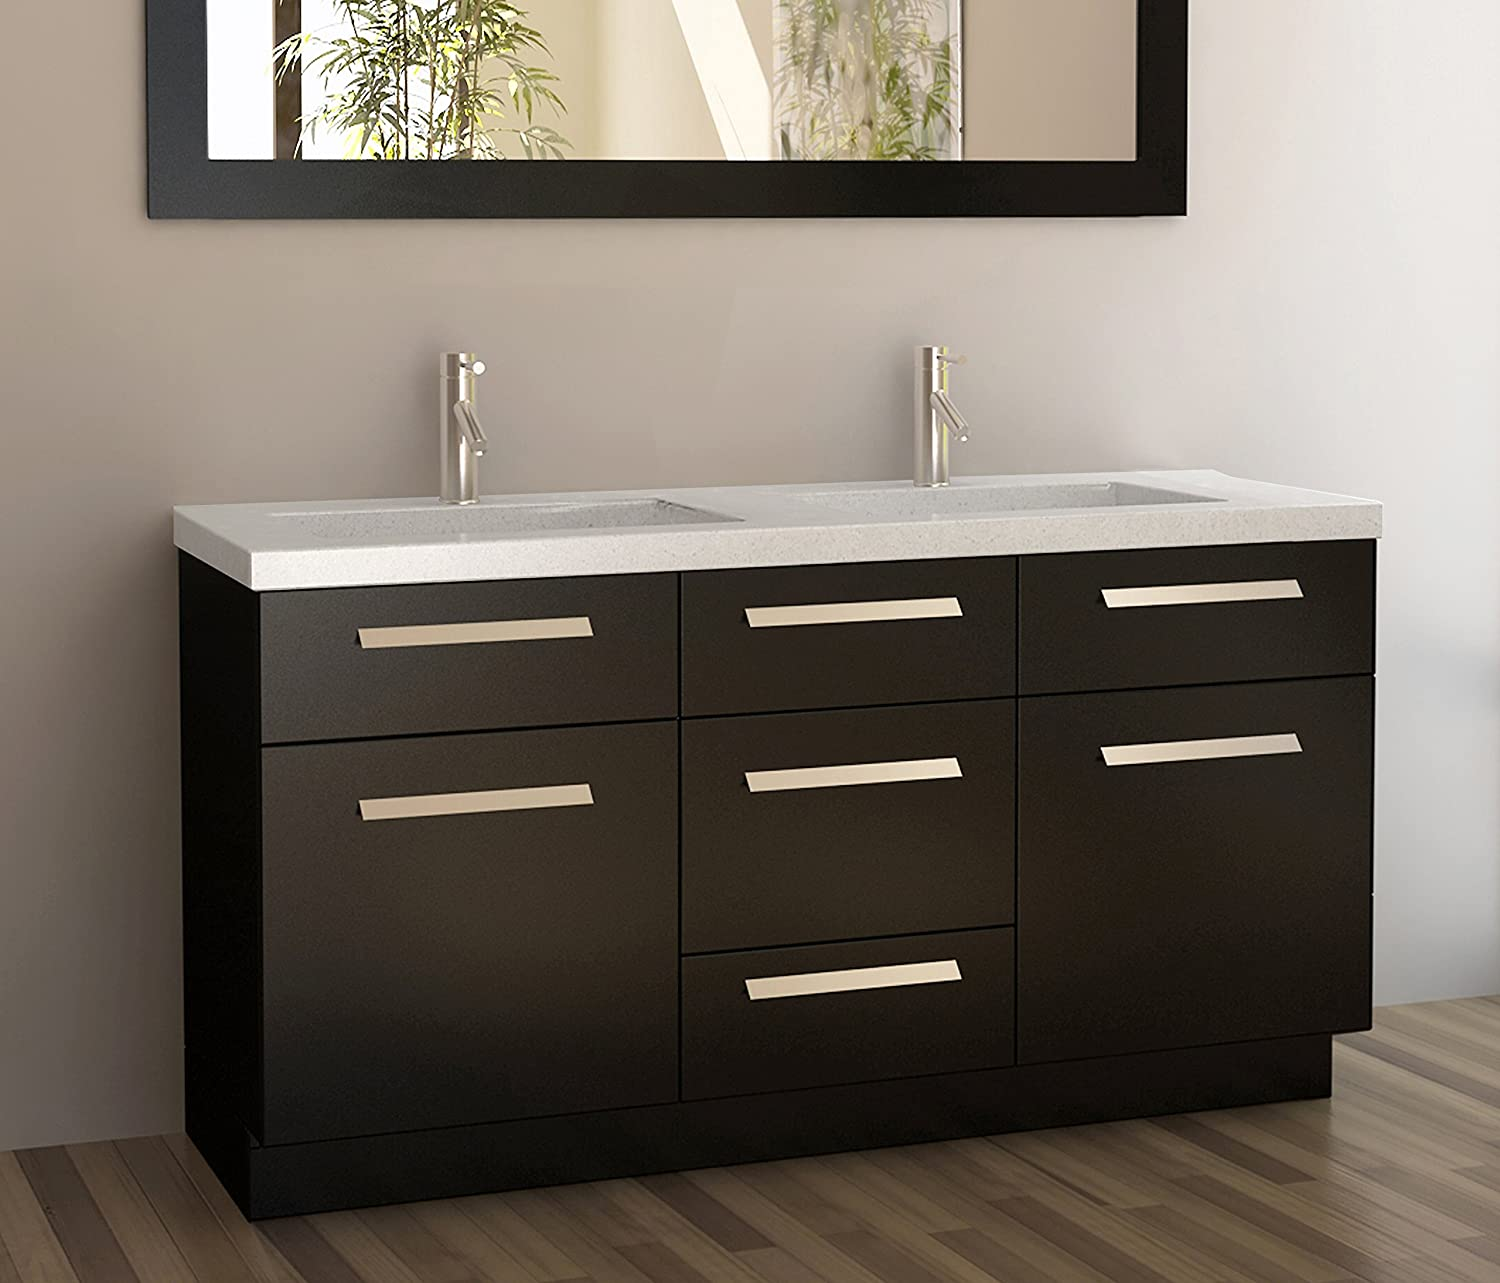 Design Element Moscony Double Sink Vanity Set with Espresso Finish  60 Inch Bathroom Vanities Amazon com